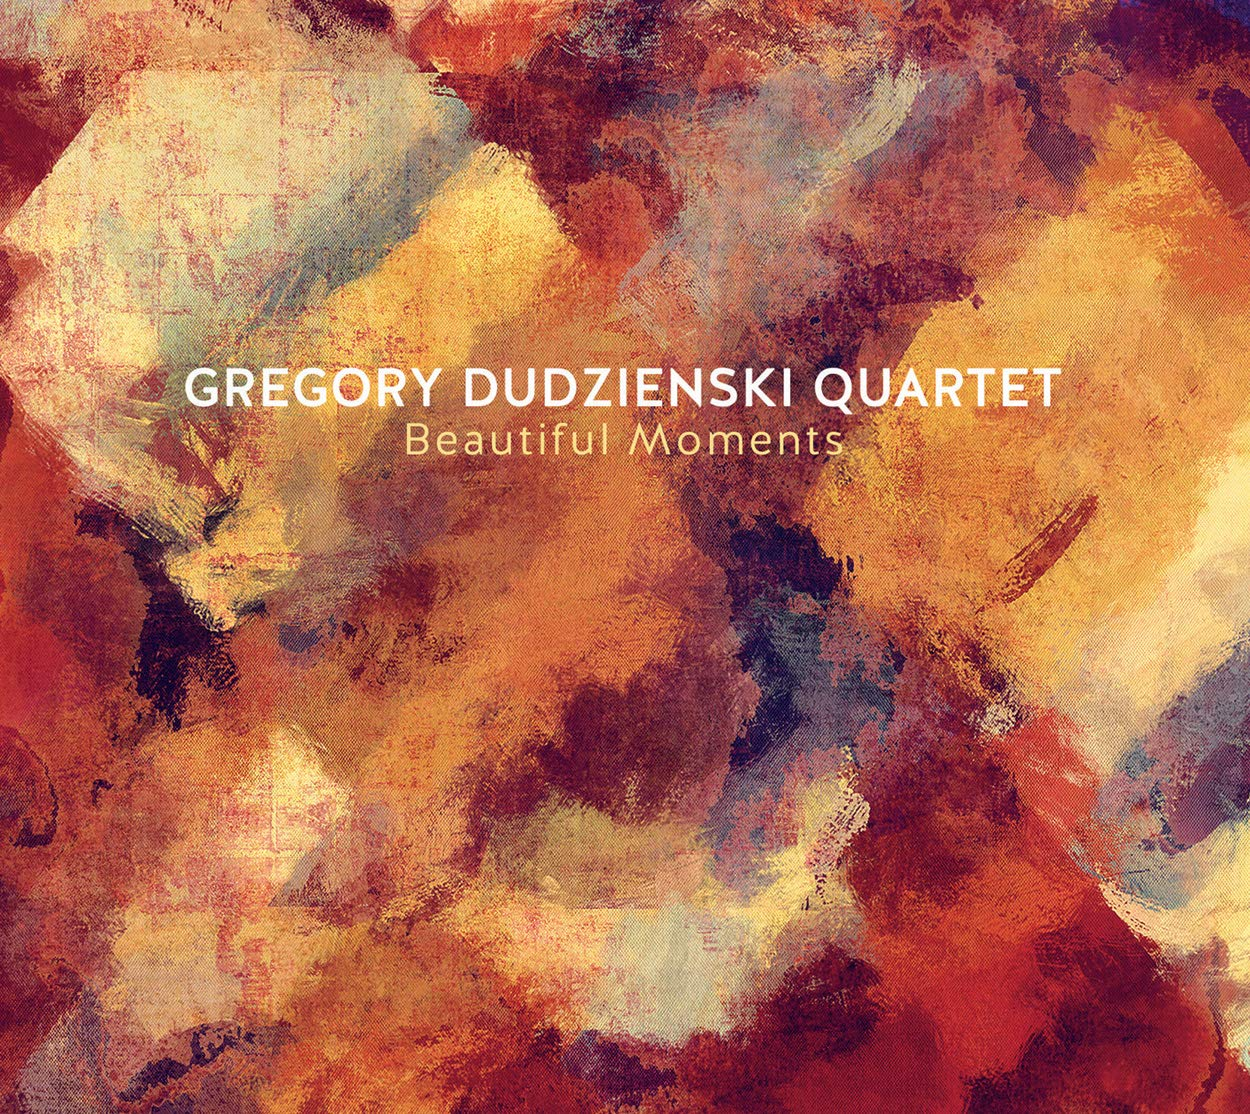 Gregory Dudzienski Quartet - Beautiful Moments - Amazon.com Music